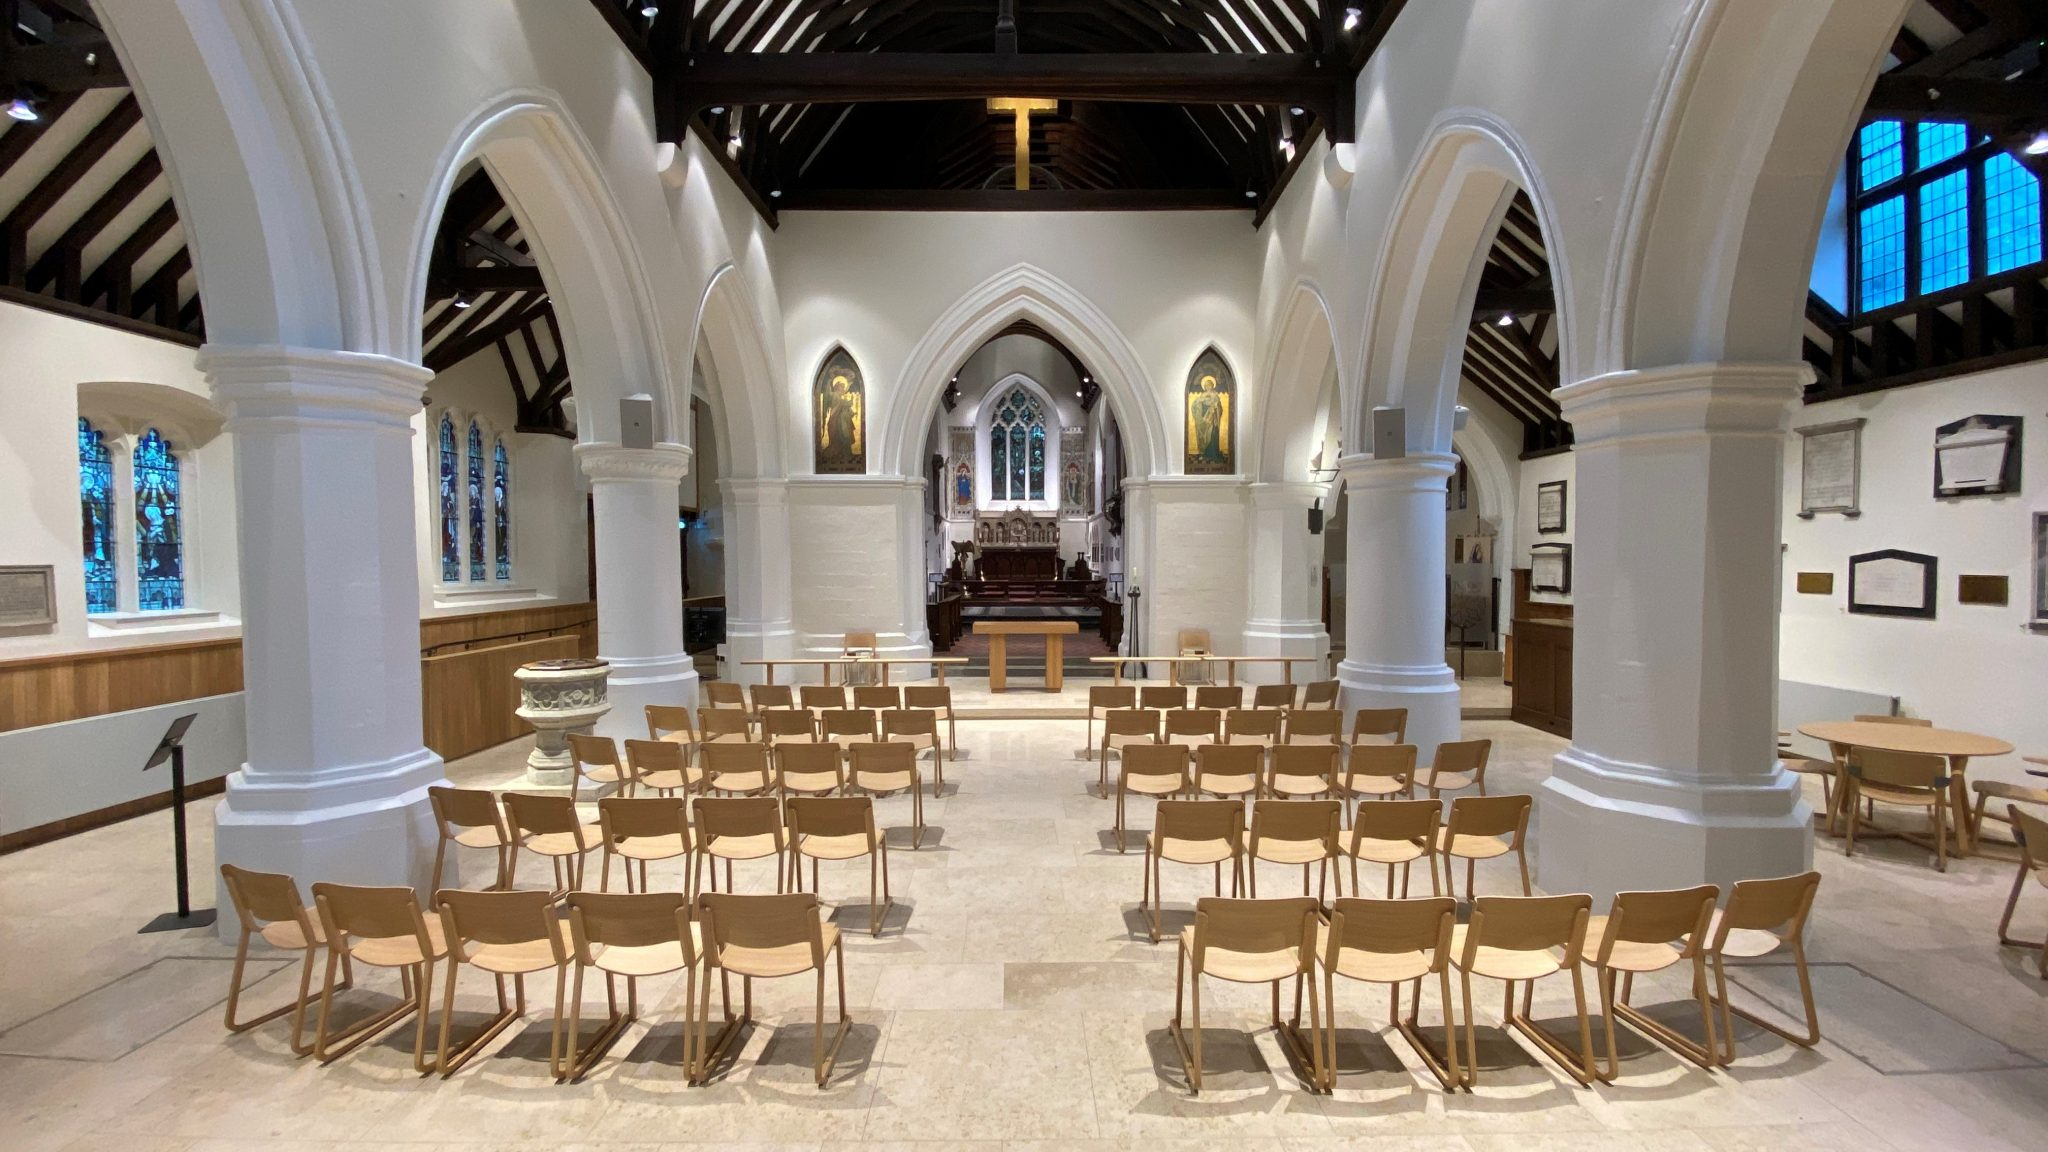 Re-ordered-Church-Interior